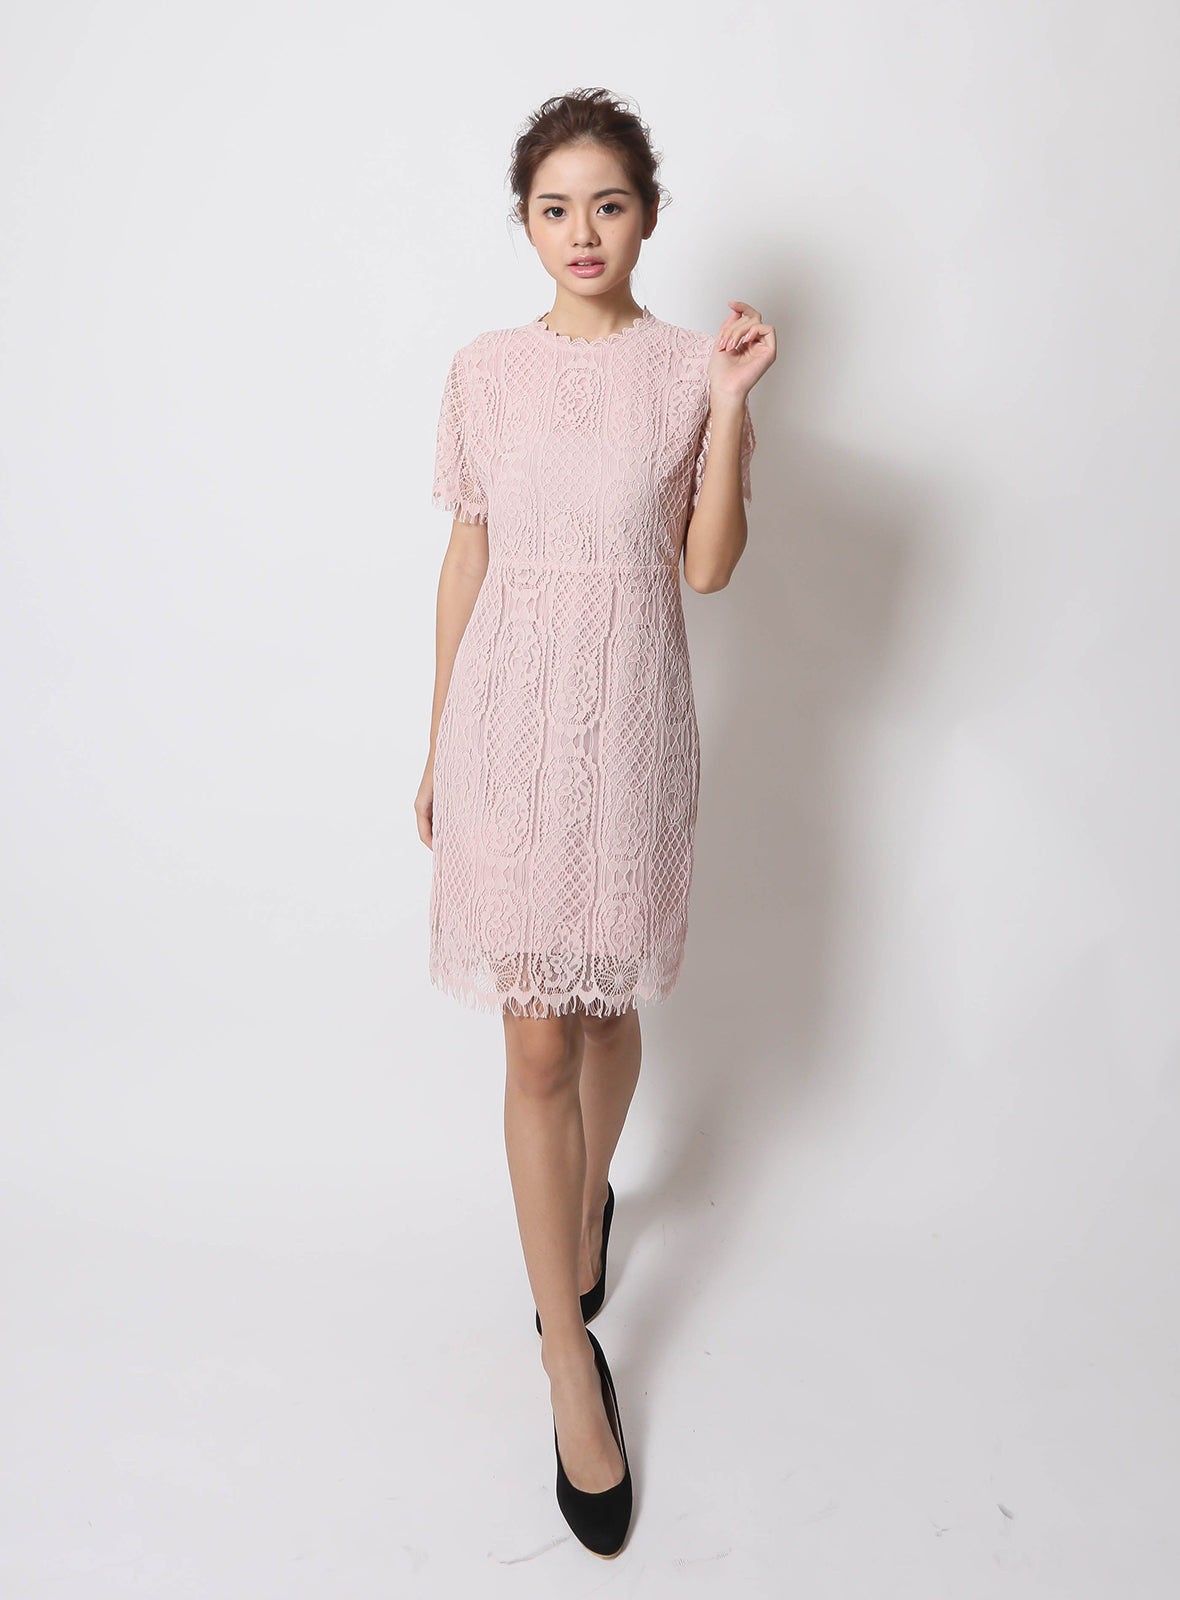 Piper Dress in Blush